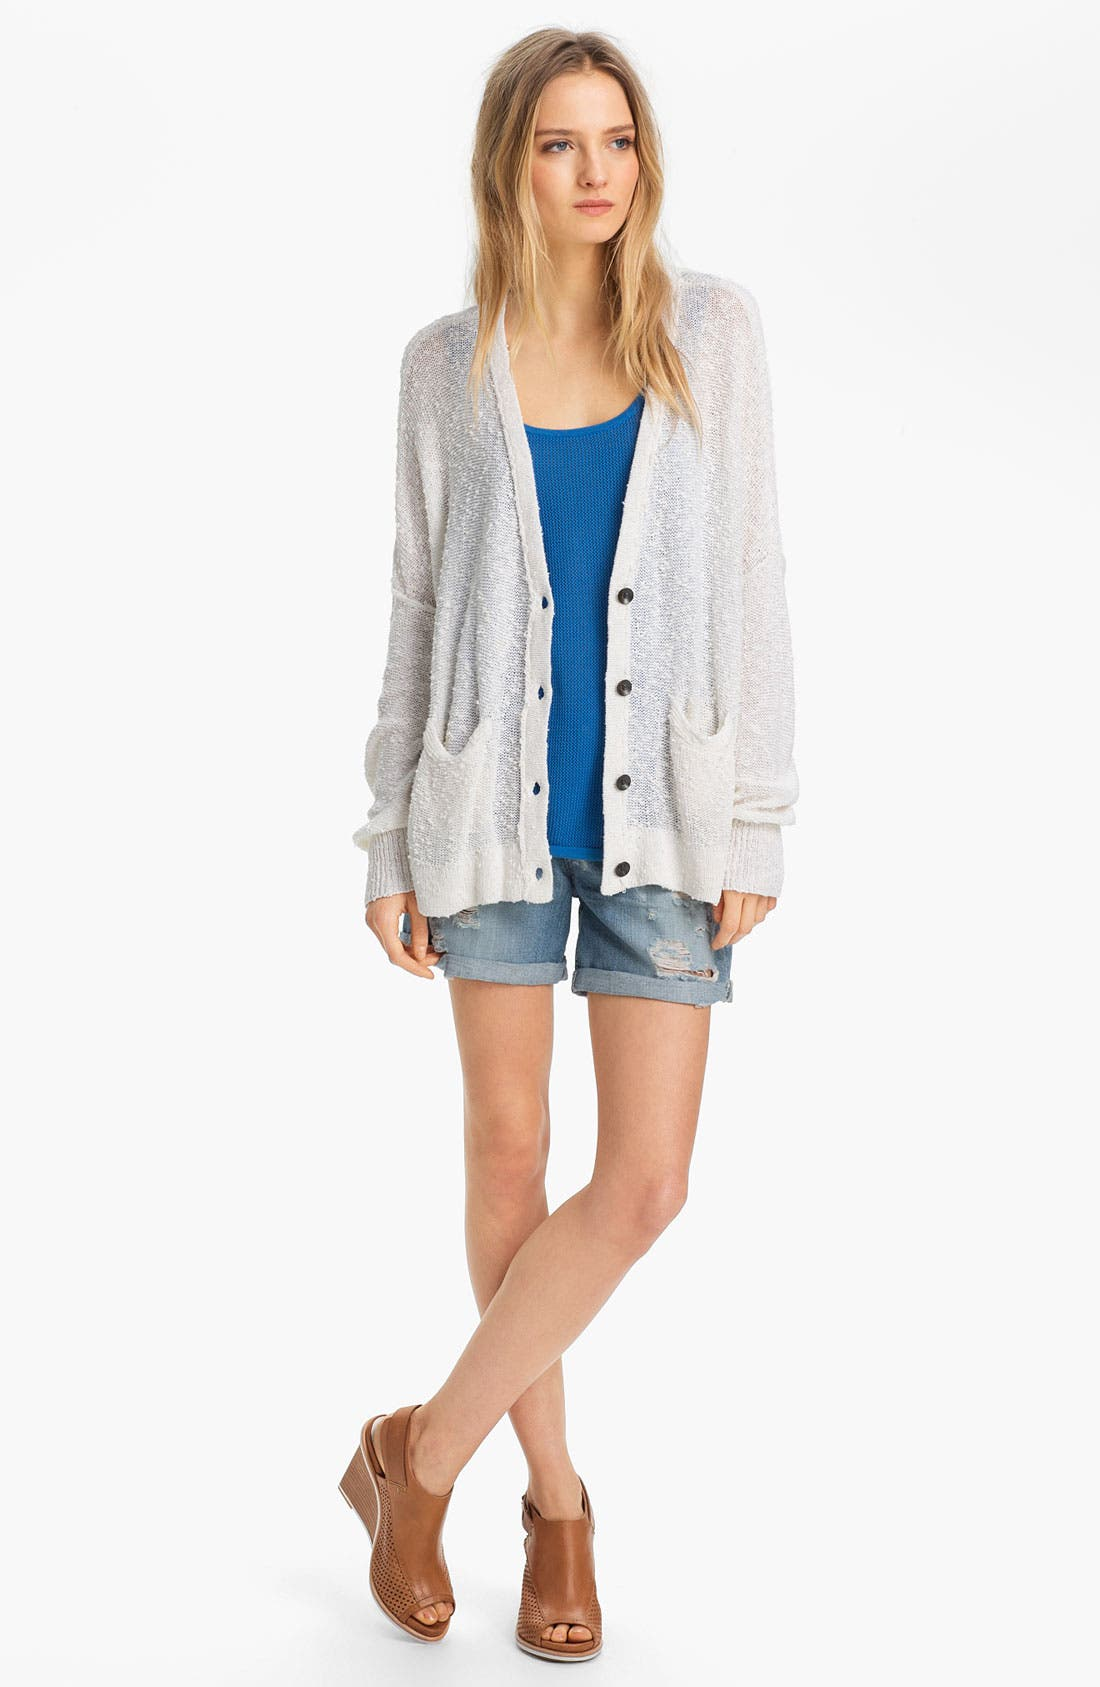 Alternate Image 1 Selected - rag & bone/JEAN 'Marilyn' Cardigan